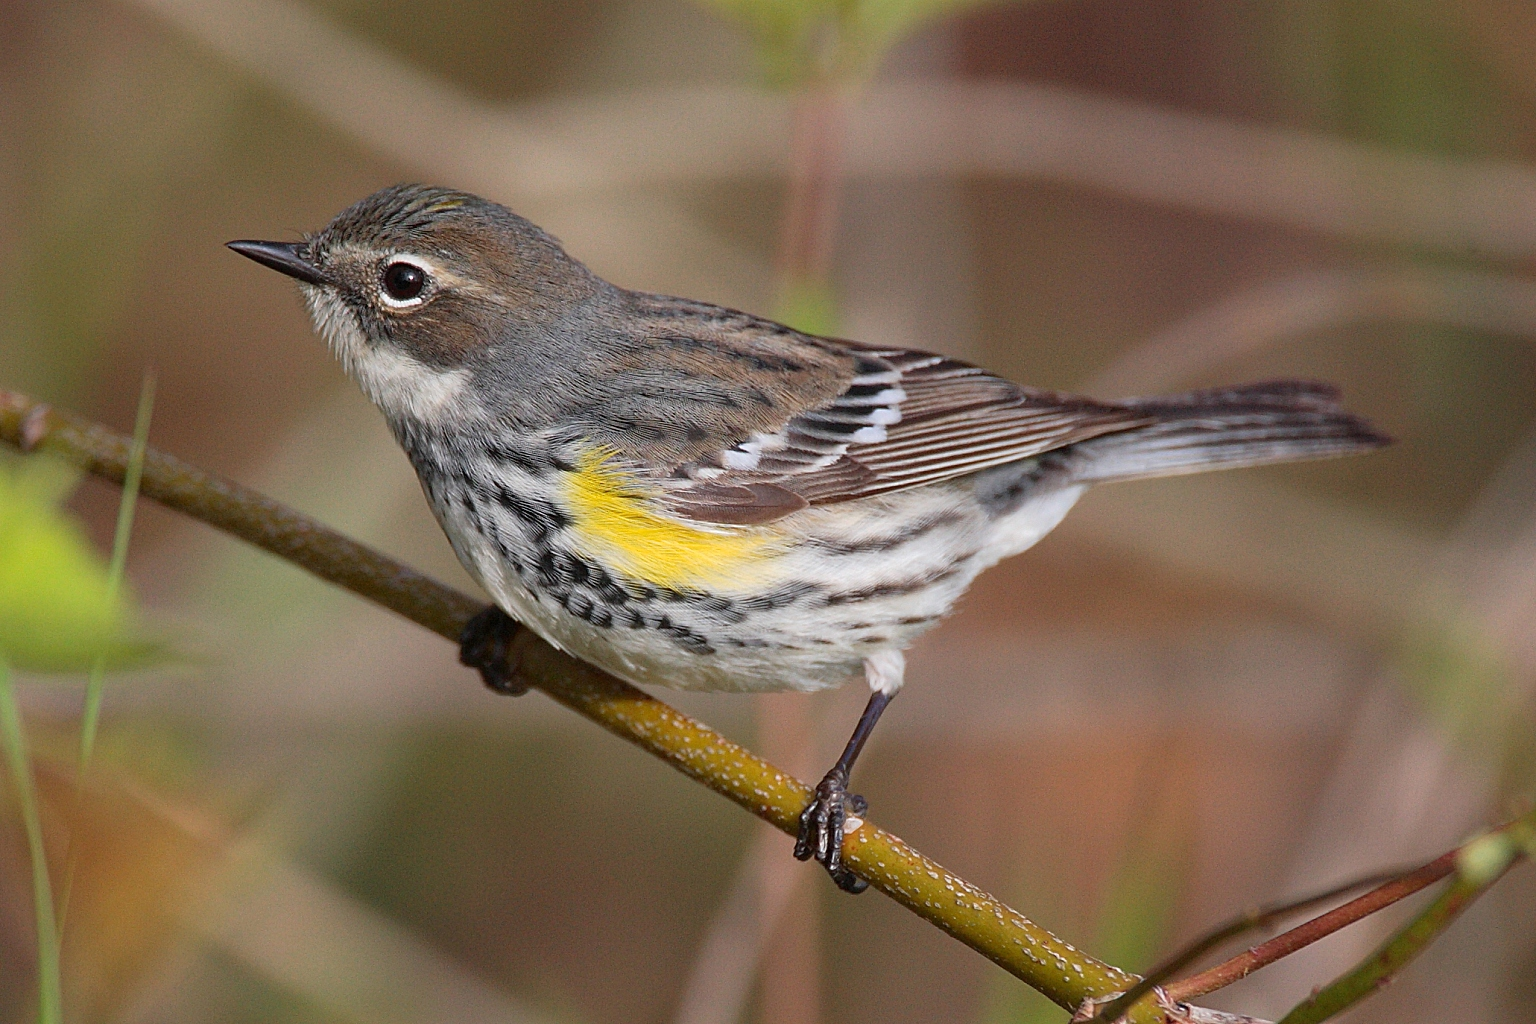 Small yellow rumped warbler bird on a branch.